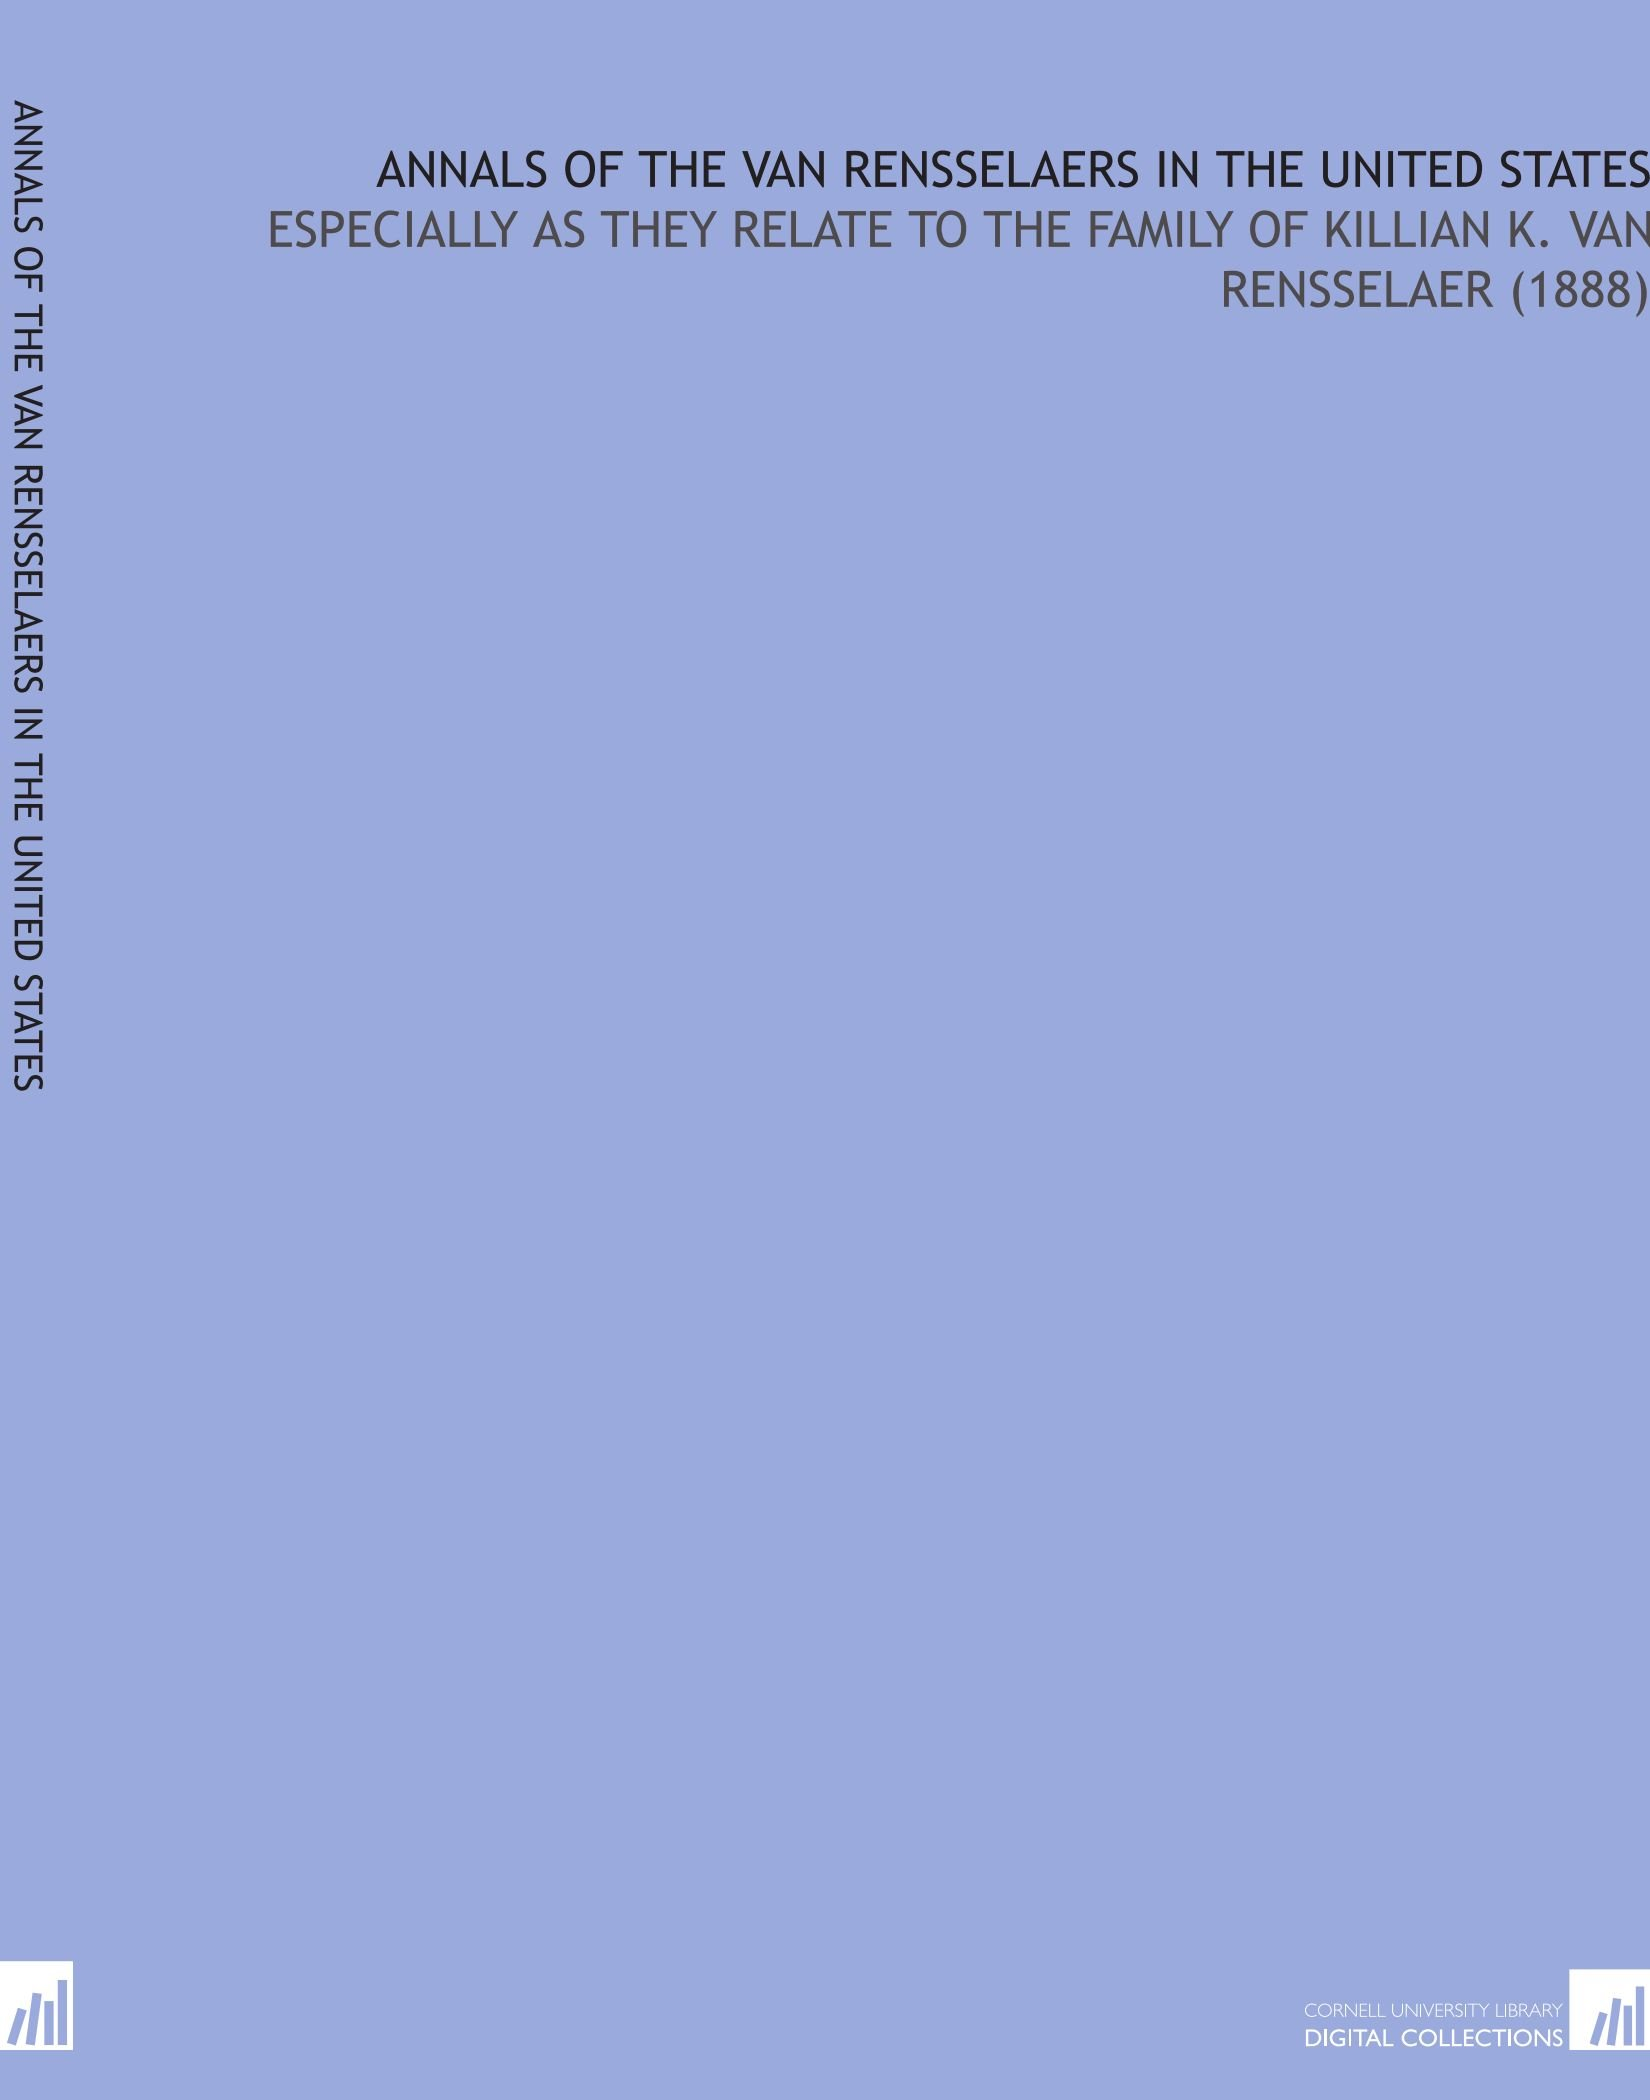 Annals of the Van Rensselaers in the United States: Especially as They Relate to the Family of Killian K. Van Rensselaer (1888) ebook